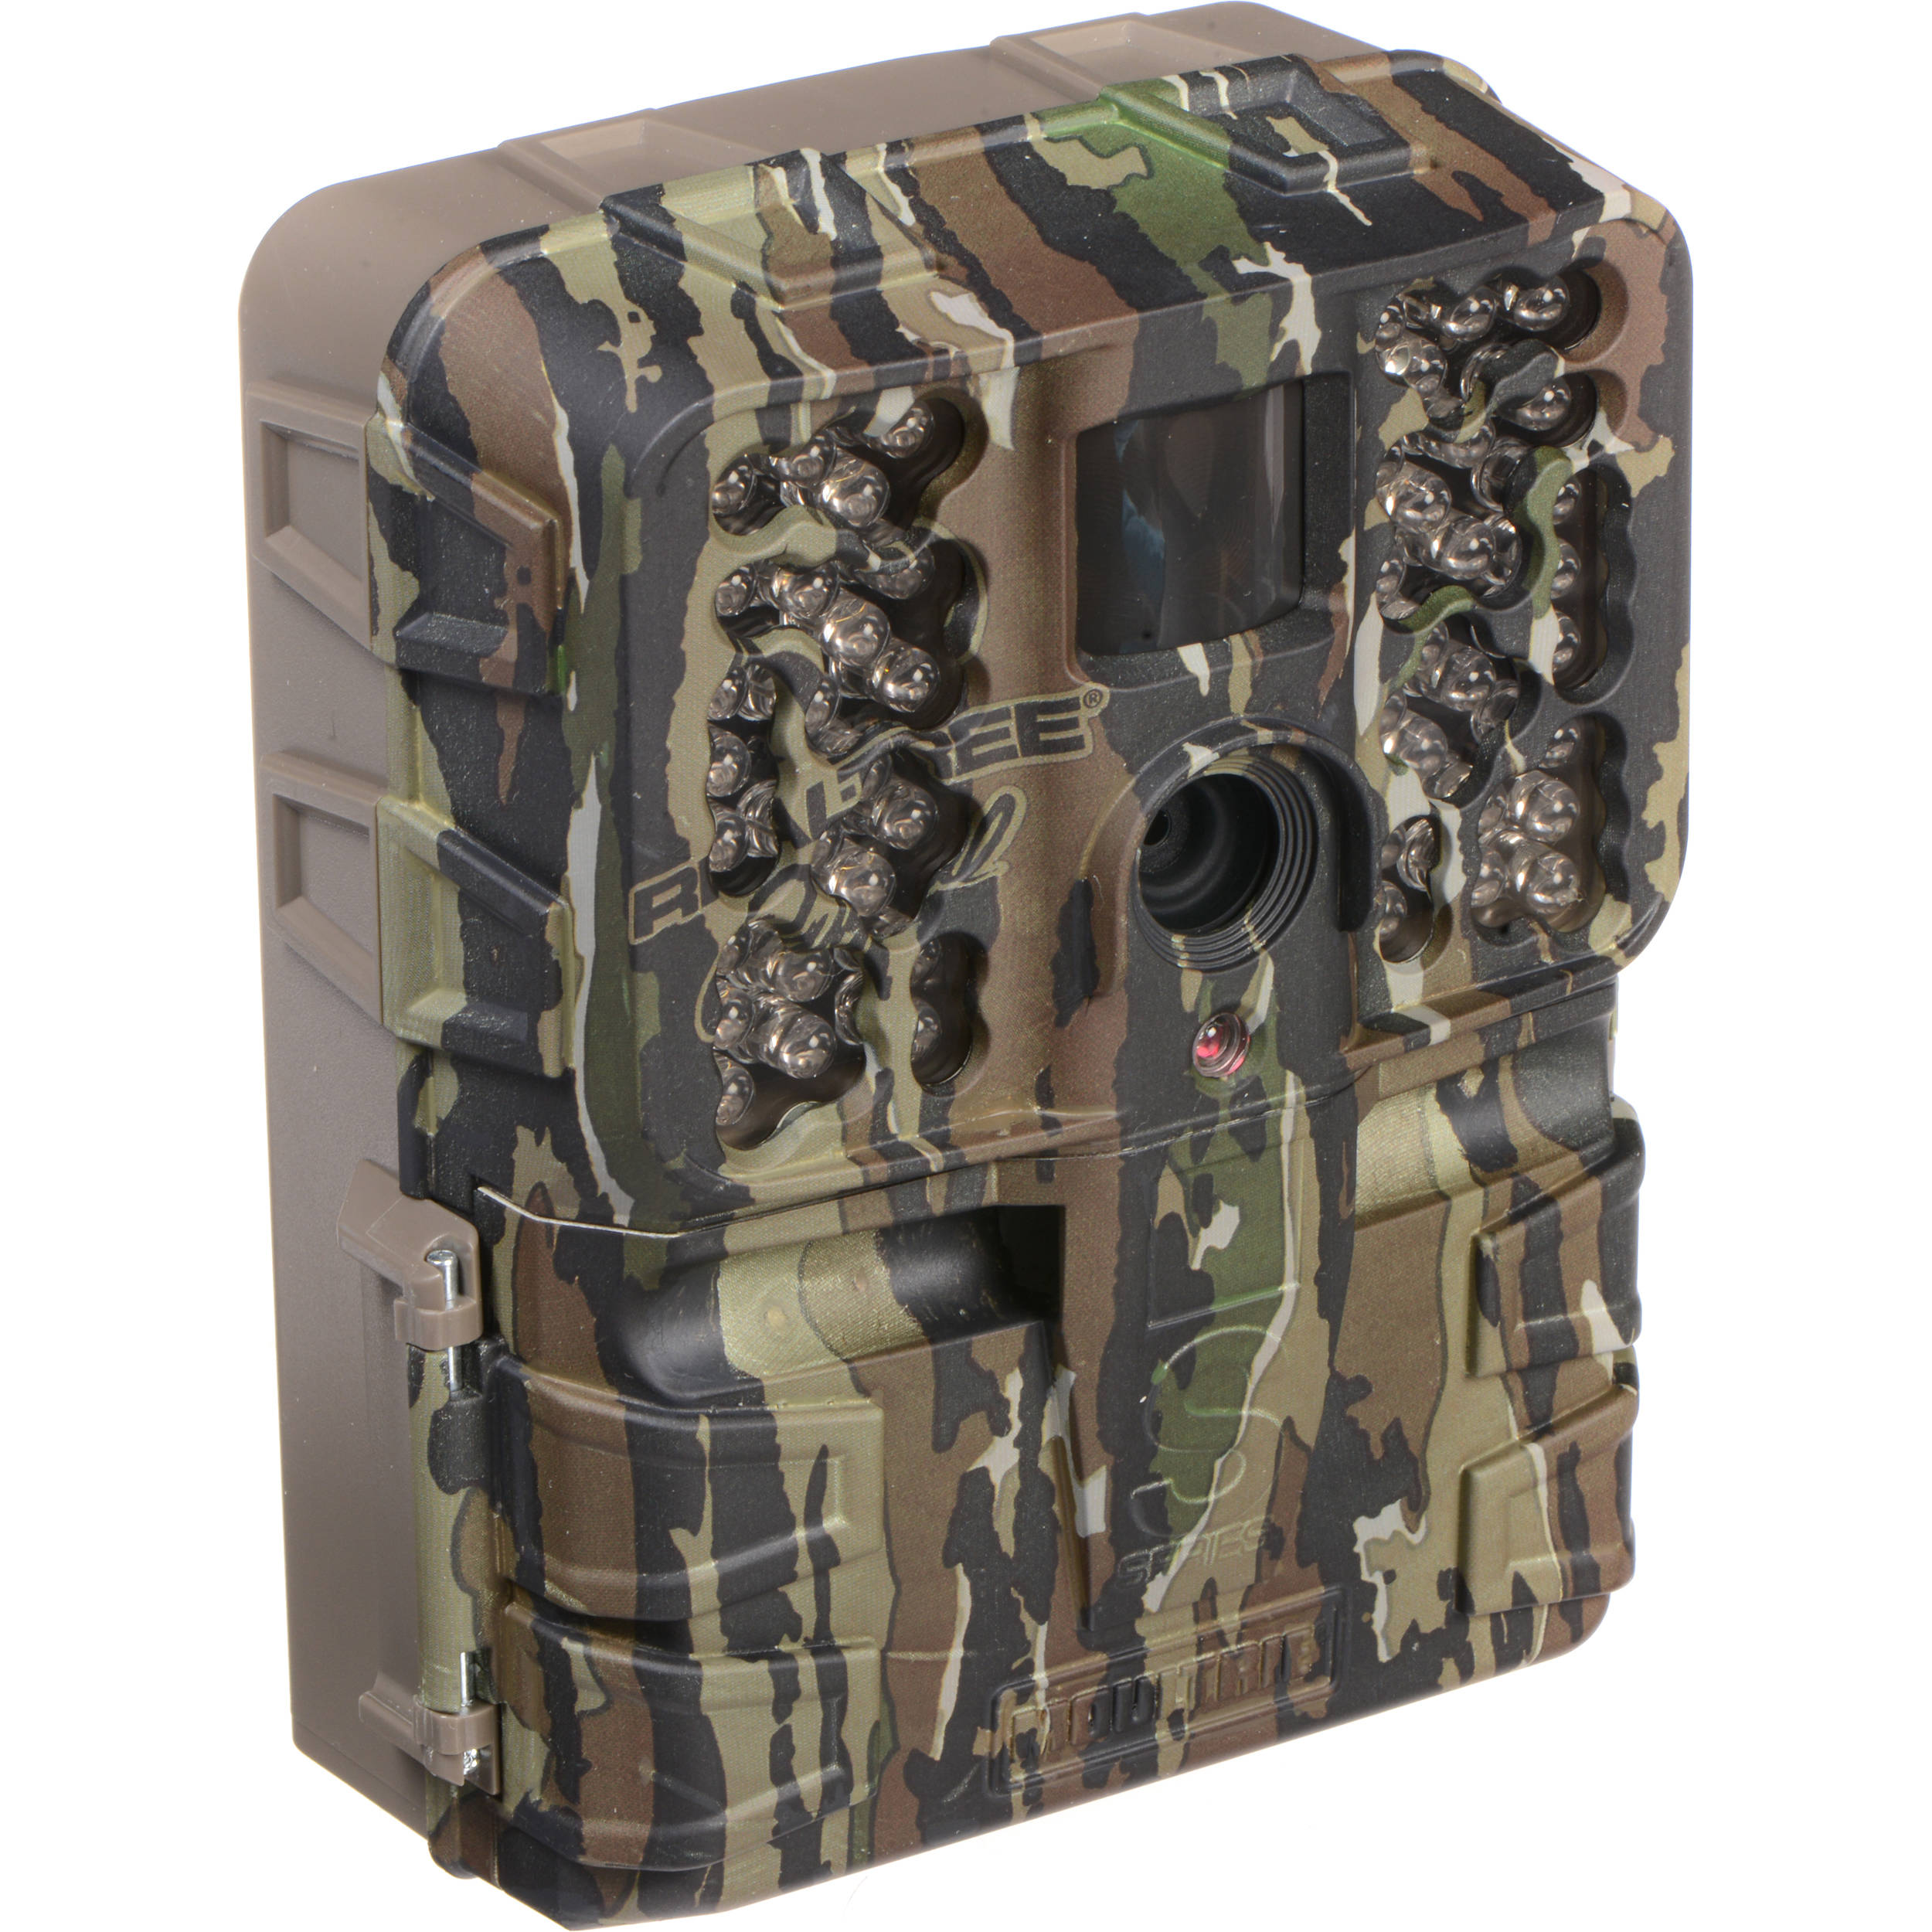 Moultrie S50i Game Camera MCG-13183 B&H Photo Video